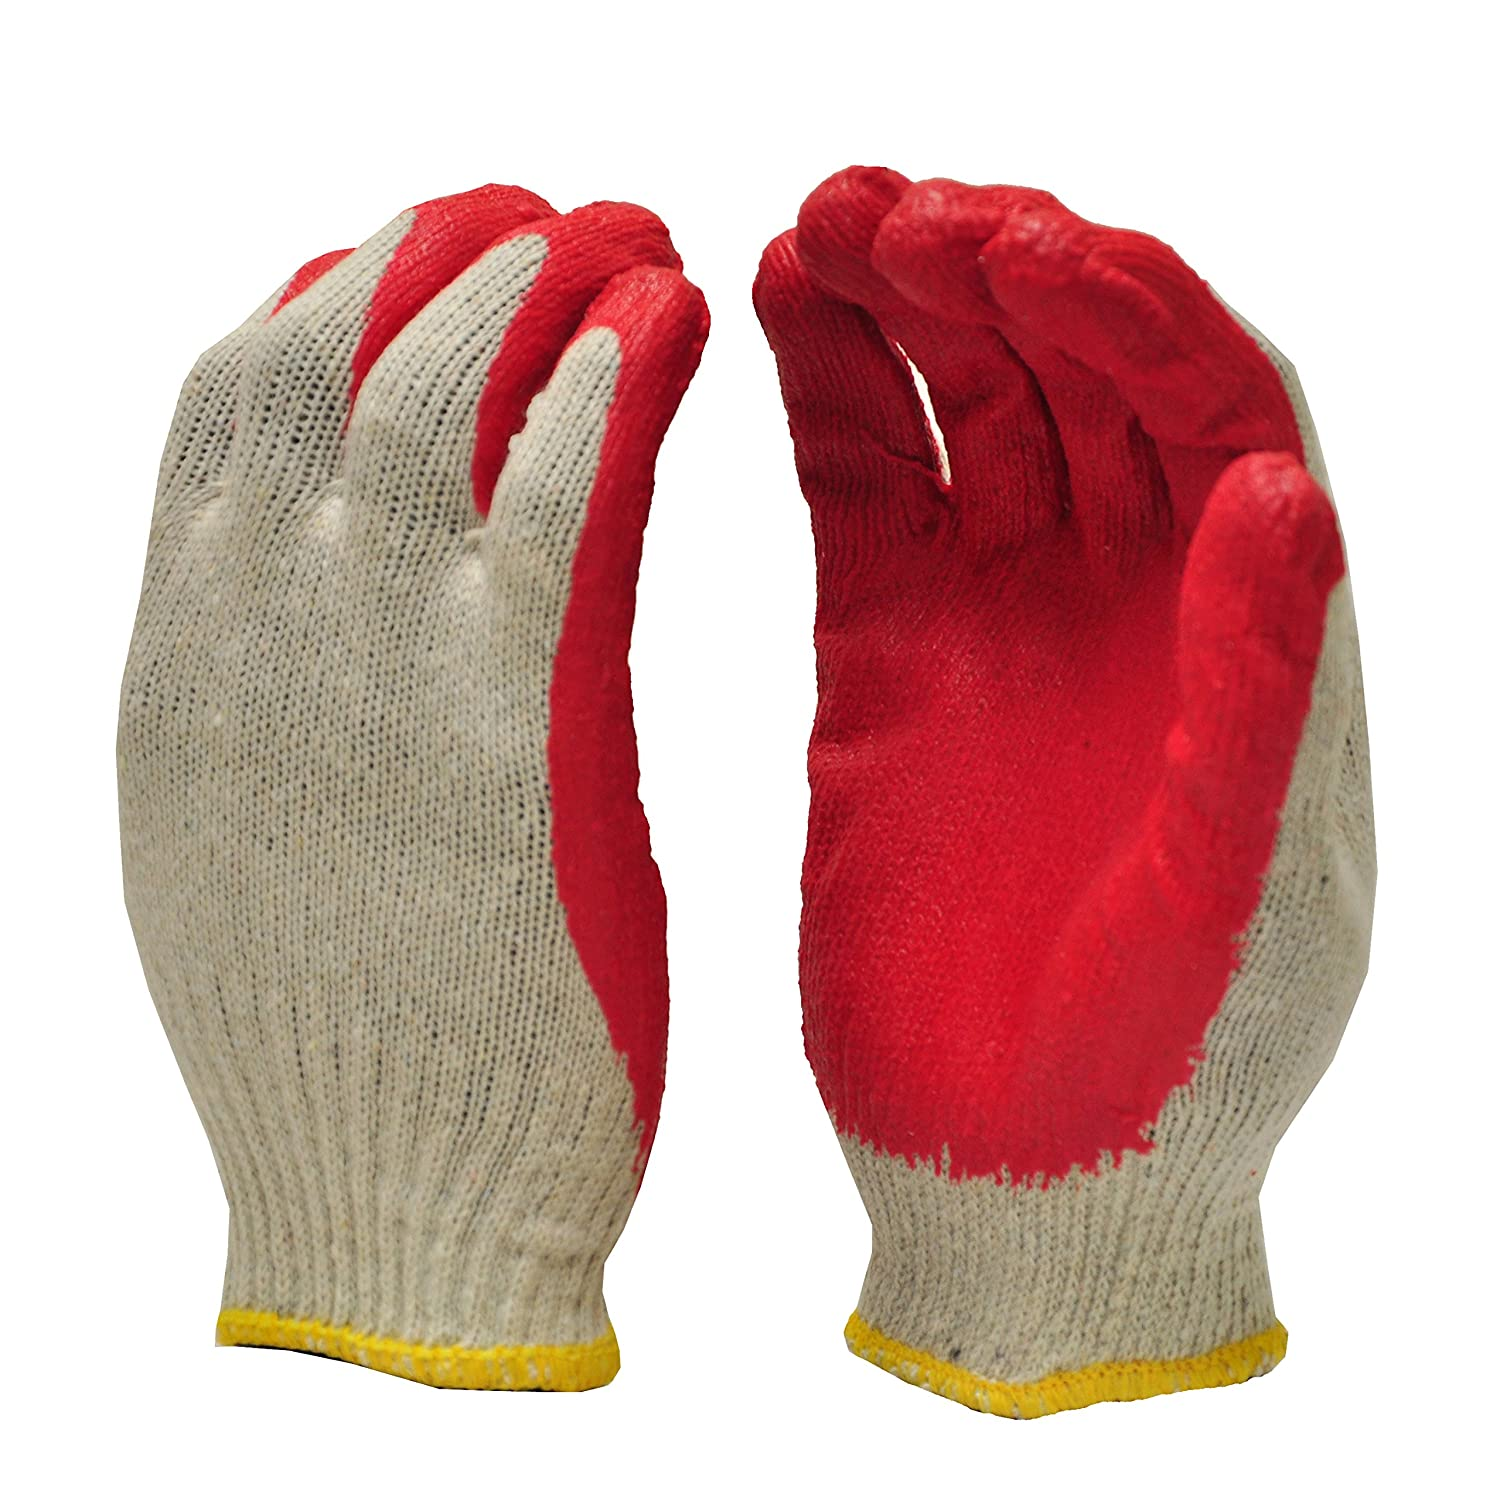 GF Gloves 3106-300 One Size Latex Dipped Palm Nitrile Coated Economical String Knit Work Glove - Red (Pack of 300) G & F